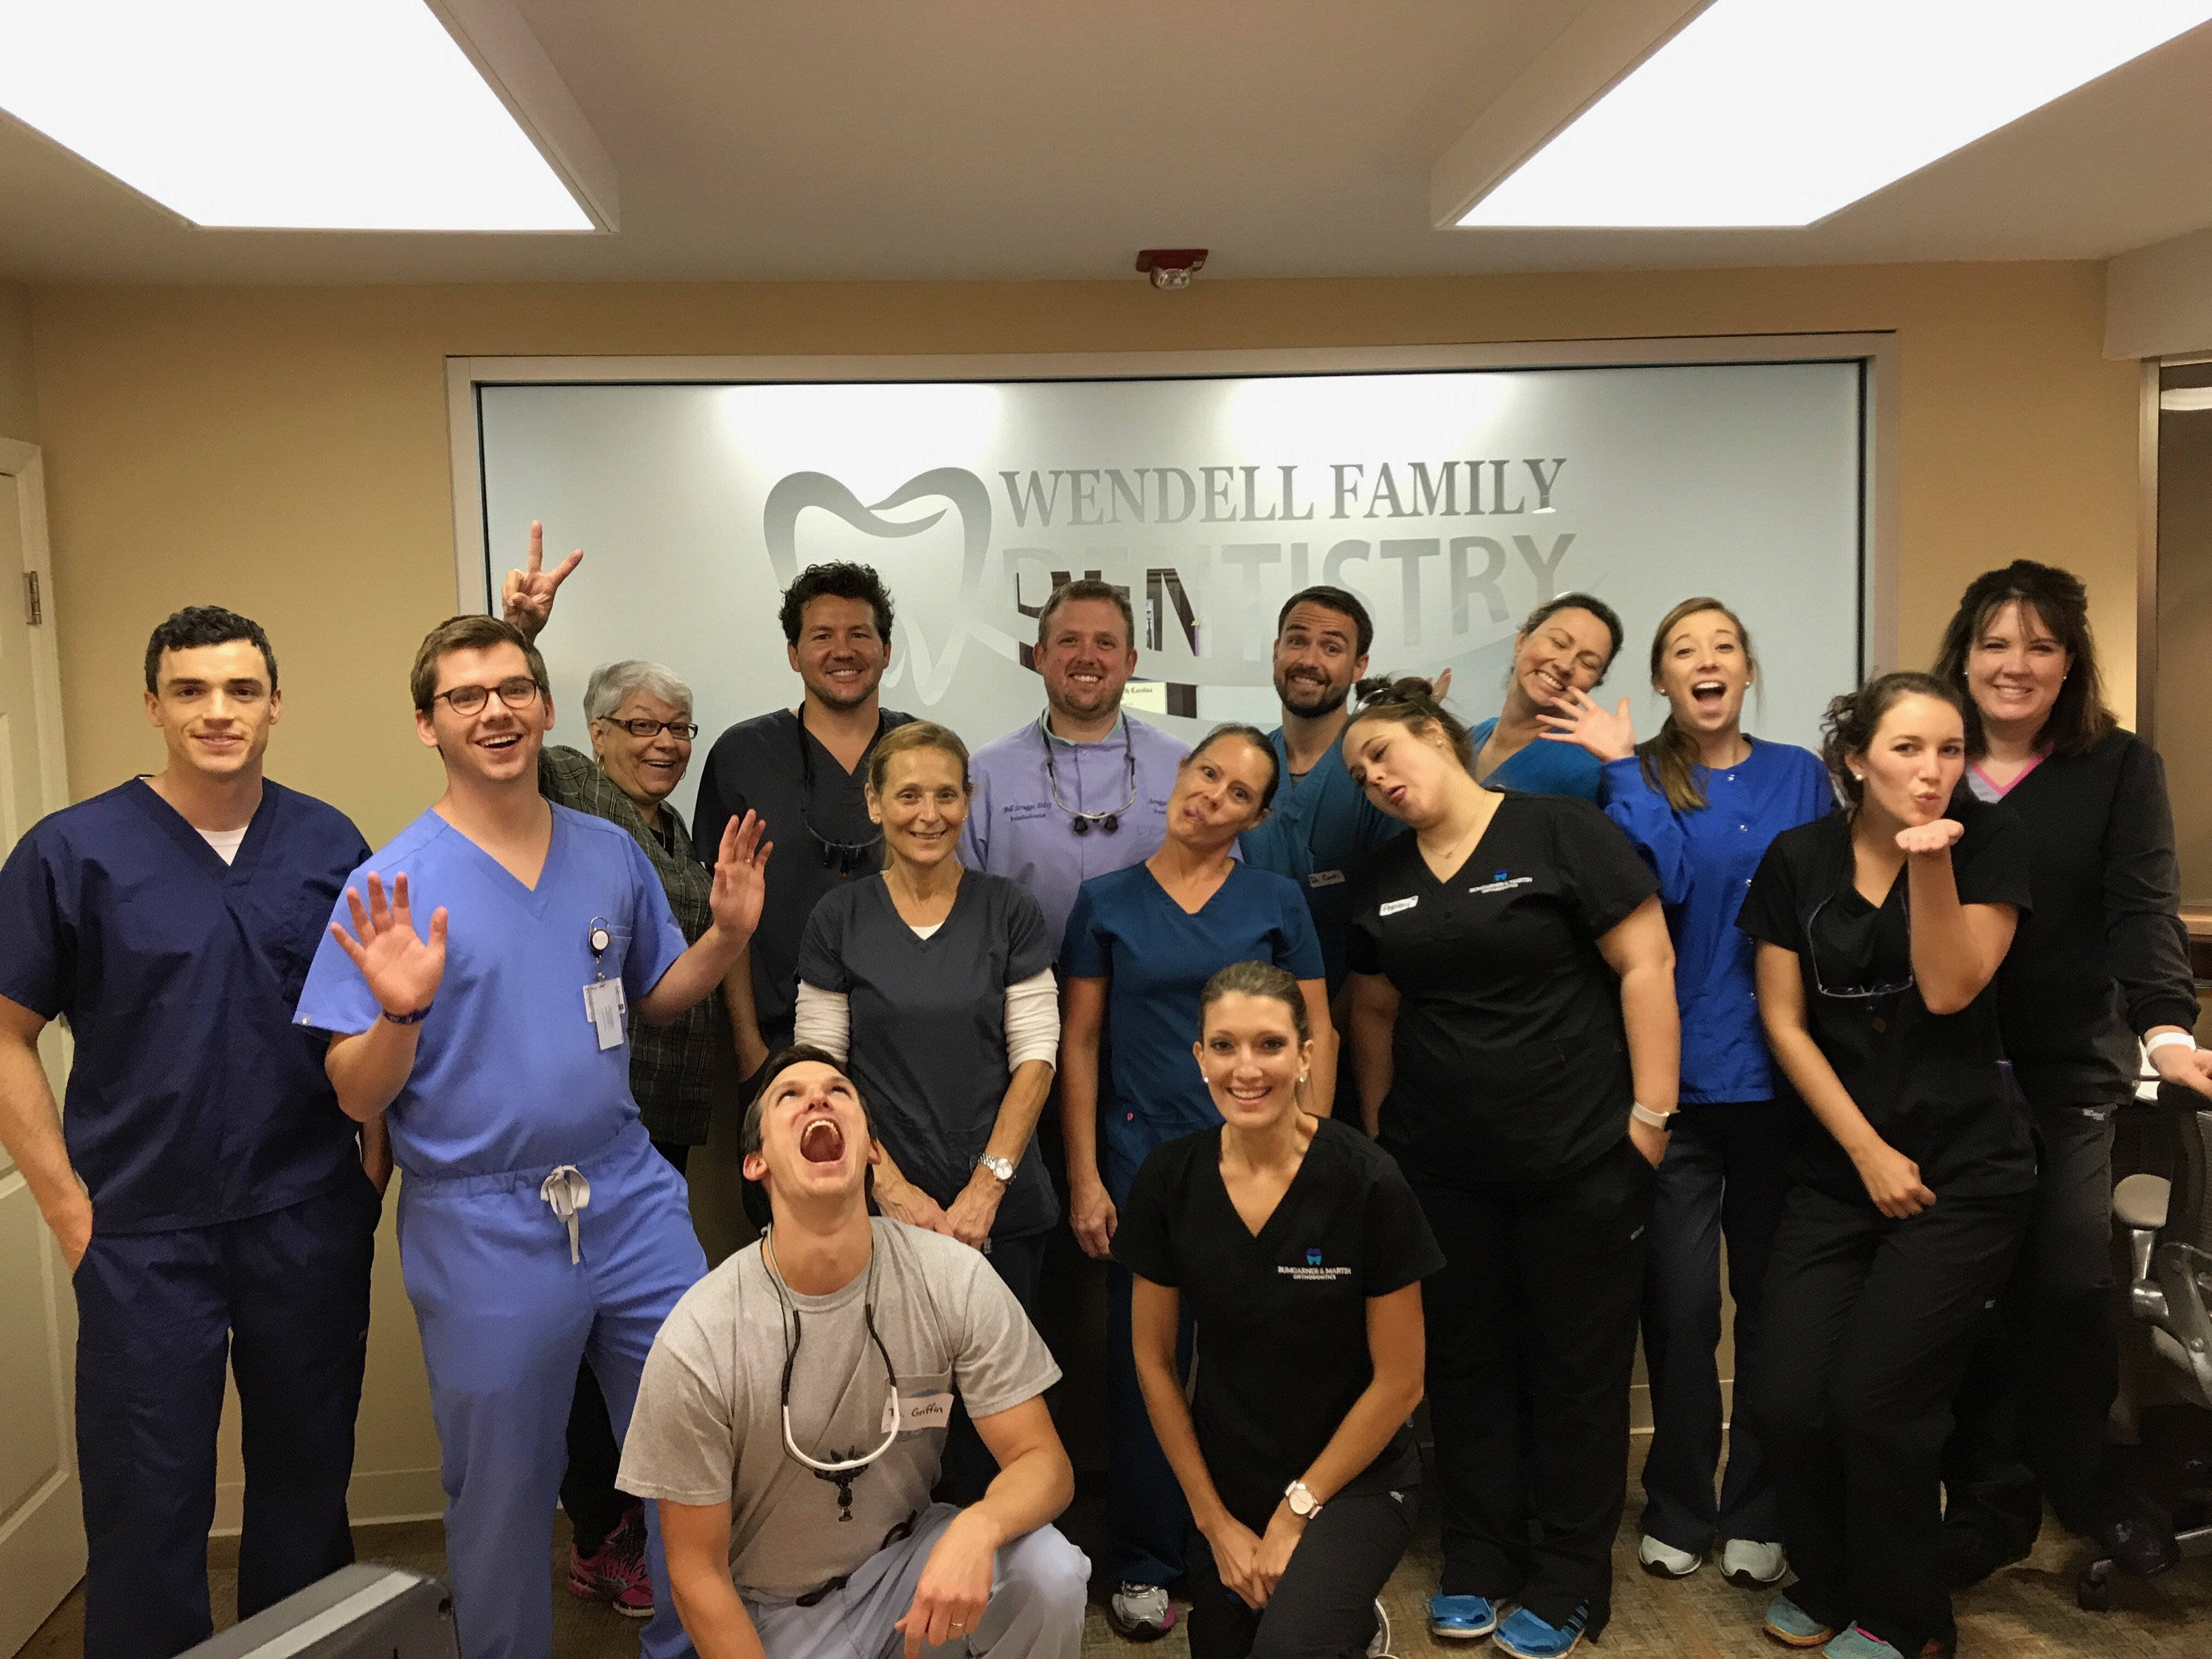 Partnering with Wendell Family Dentistry once a year!